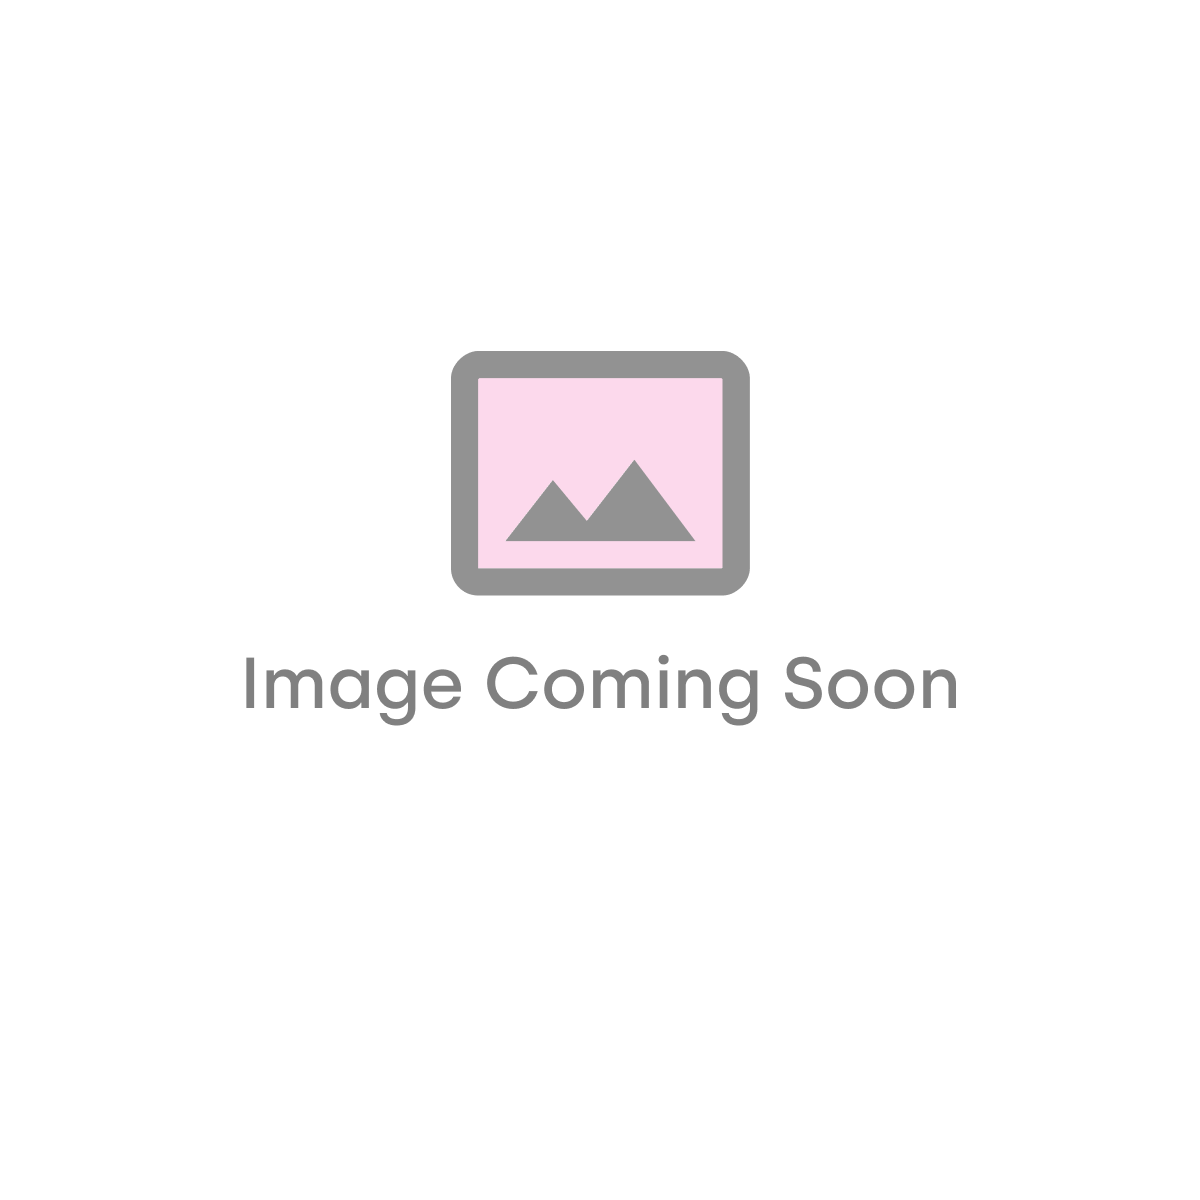 Kiimat Aqua 900mm Wetroom Panel - Mirror Finish (18722)